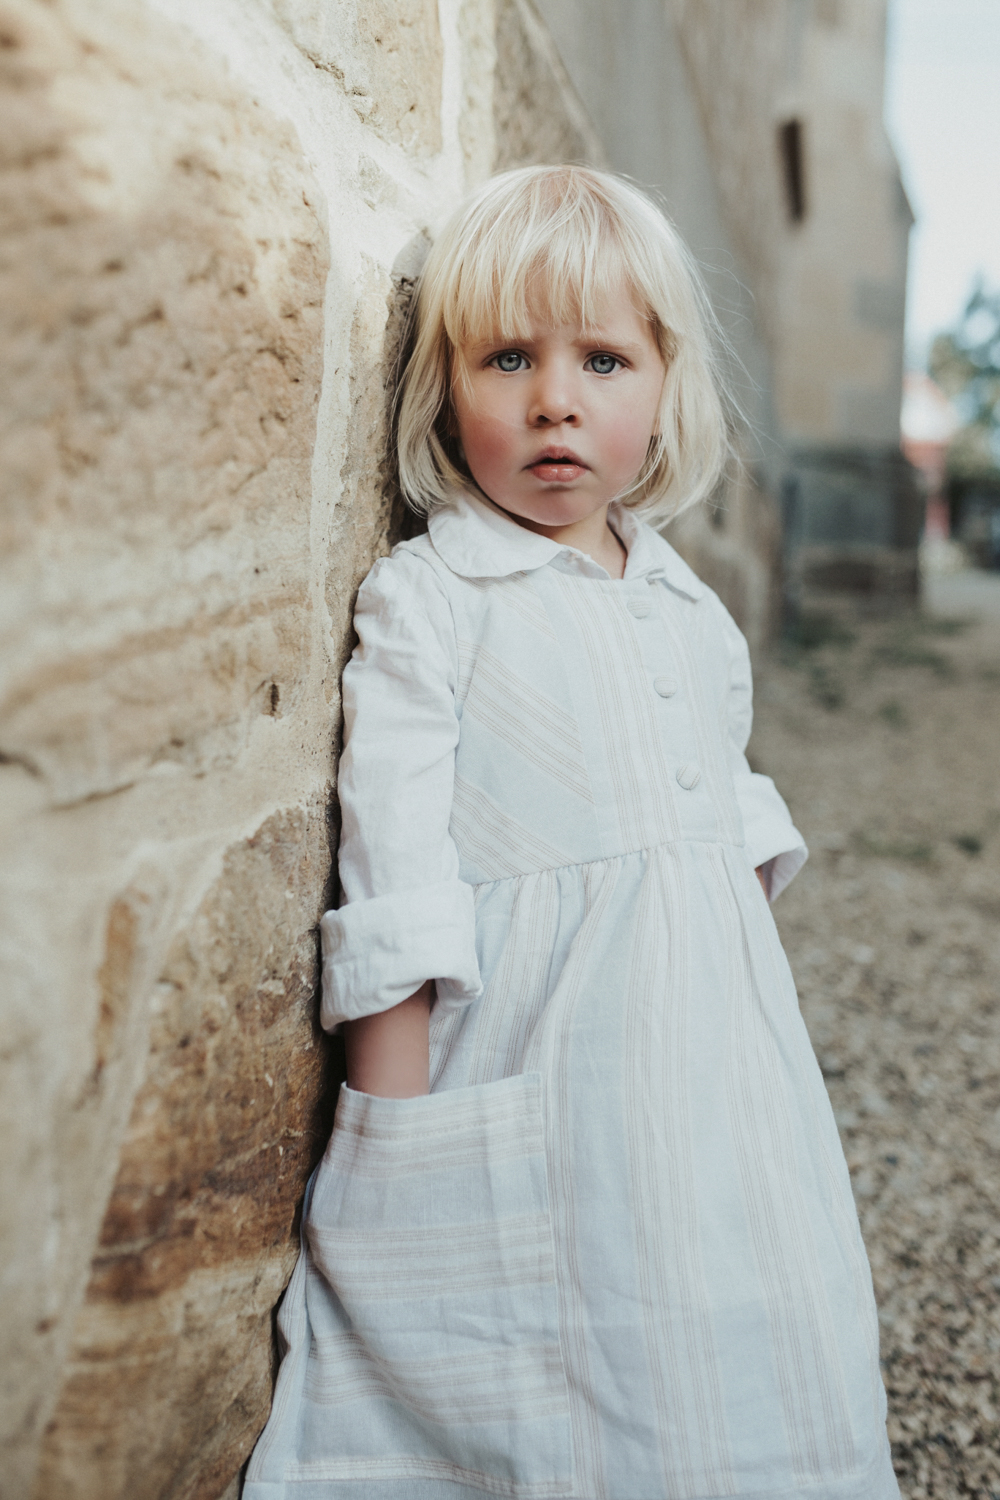 Blonde girl stares into camera by sandstone wall.